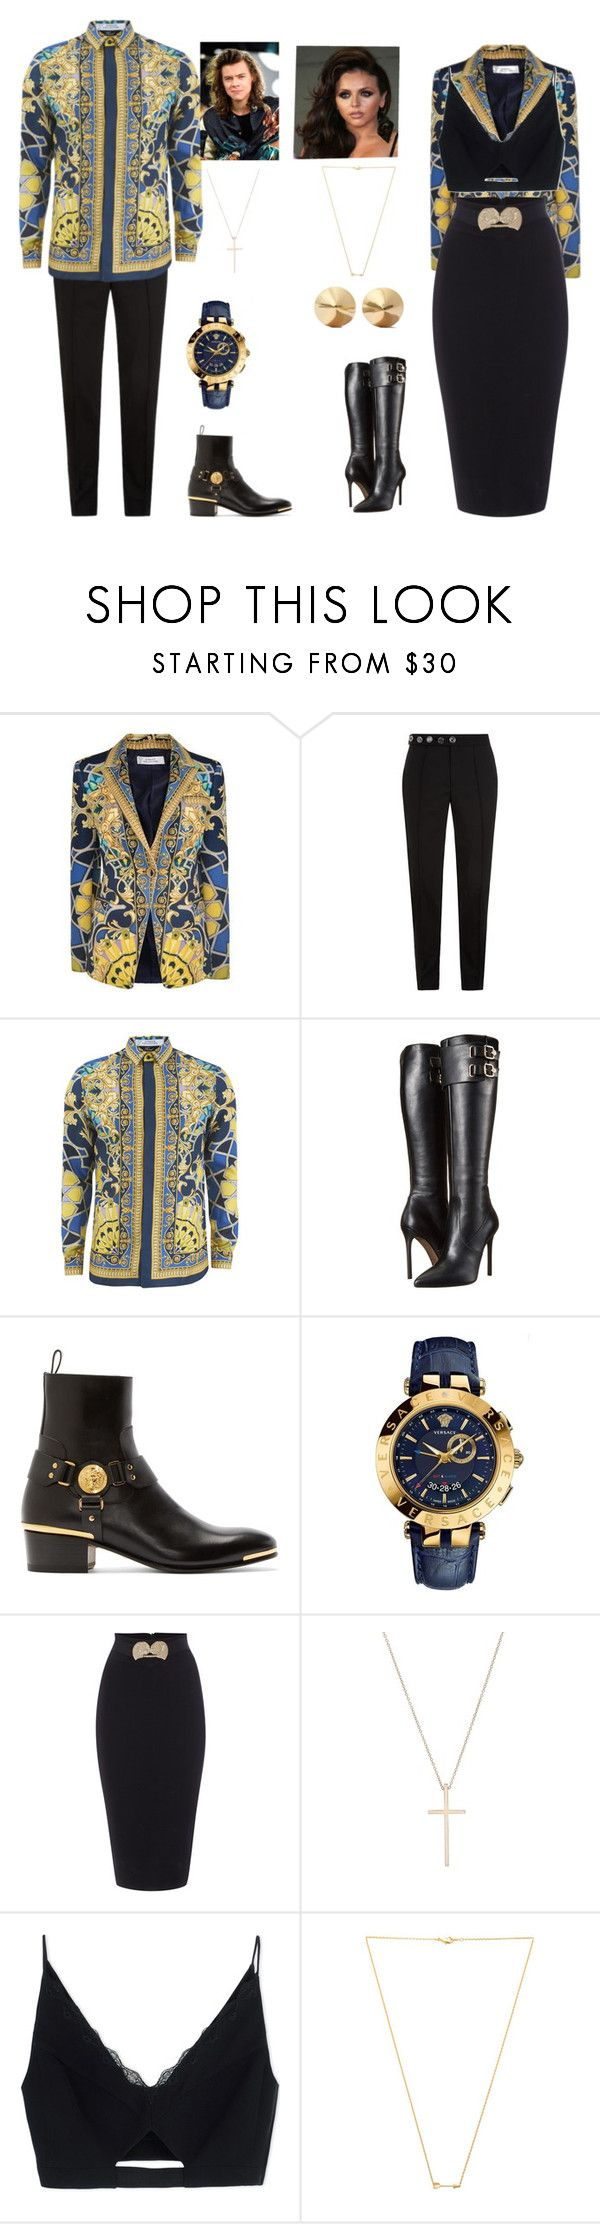 """V-Day date outfit"" by directioner-af-daily ❤ liked on Polyvore featuring Versace, Versus, Tiffany & Co., Wanderlust + Co, Eddie Borgo, women's clothing, women, female, woman and misses"